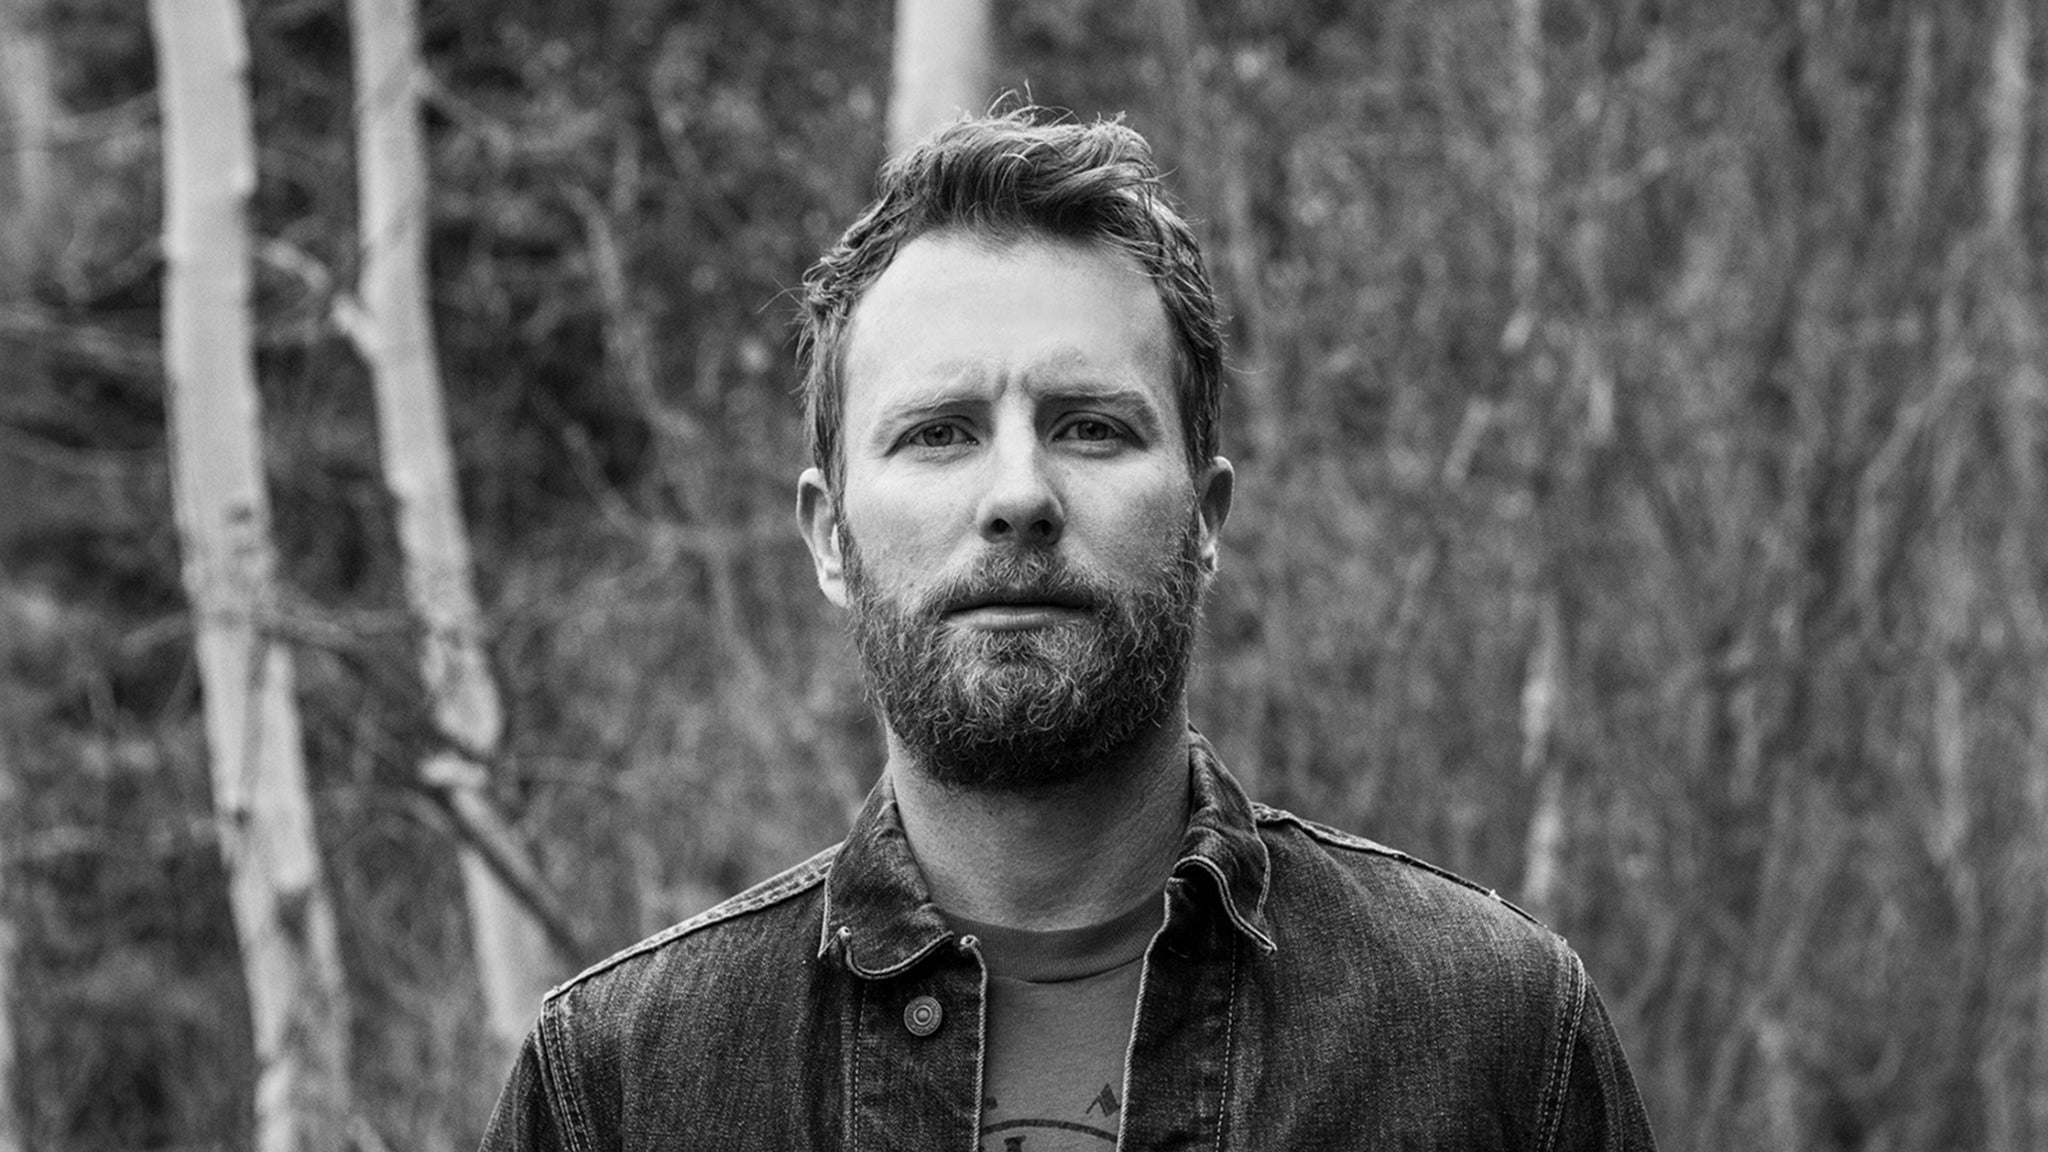 Dierks Bentley: Burning Man 2019 at The Wharf Amphitheater